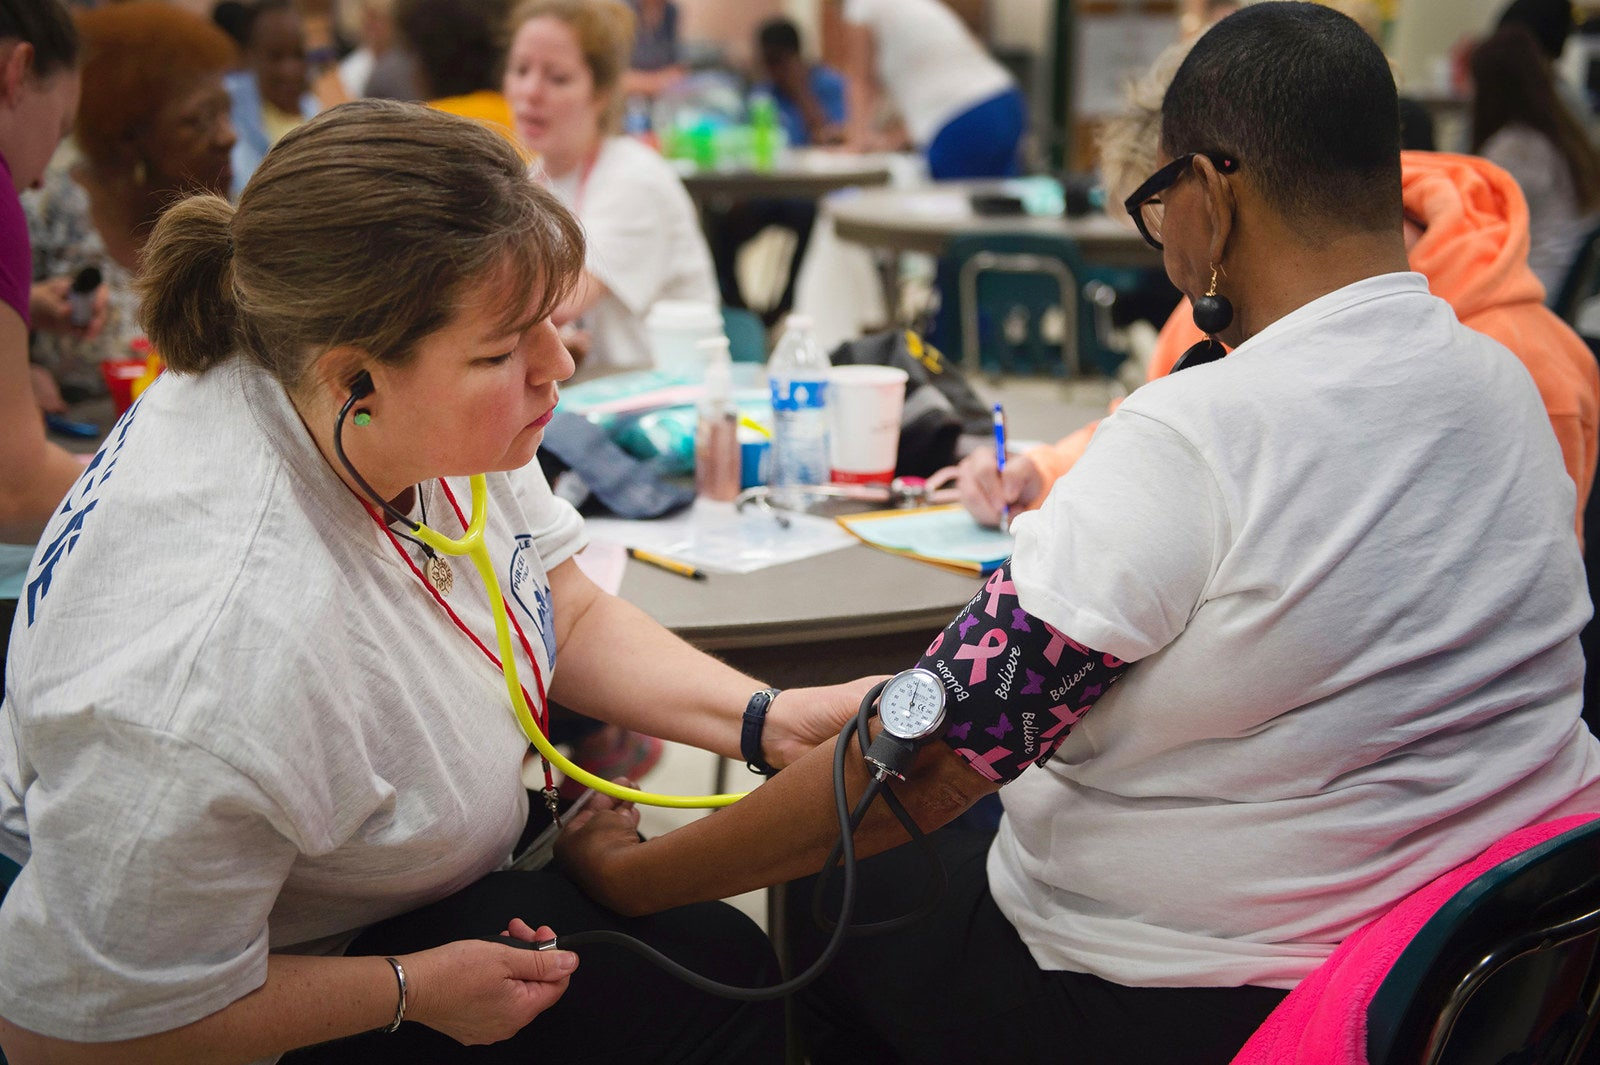 A nurse checks the blood pressure of a patient at Greensville County High School on June 25.